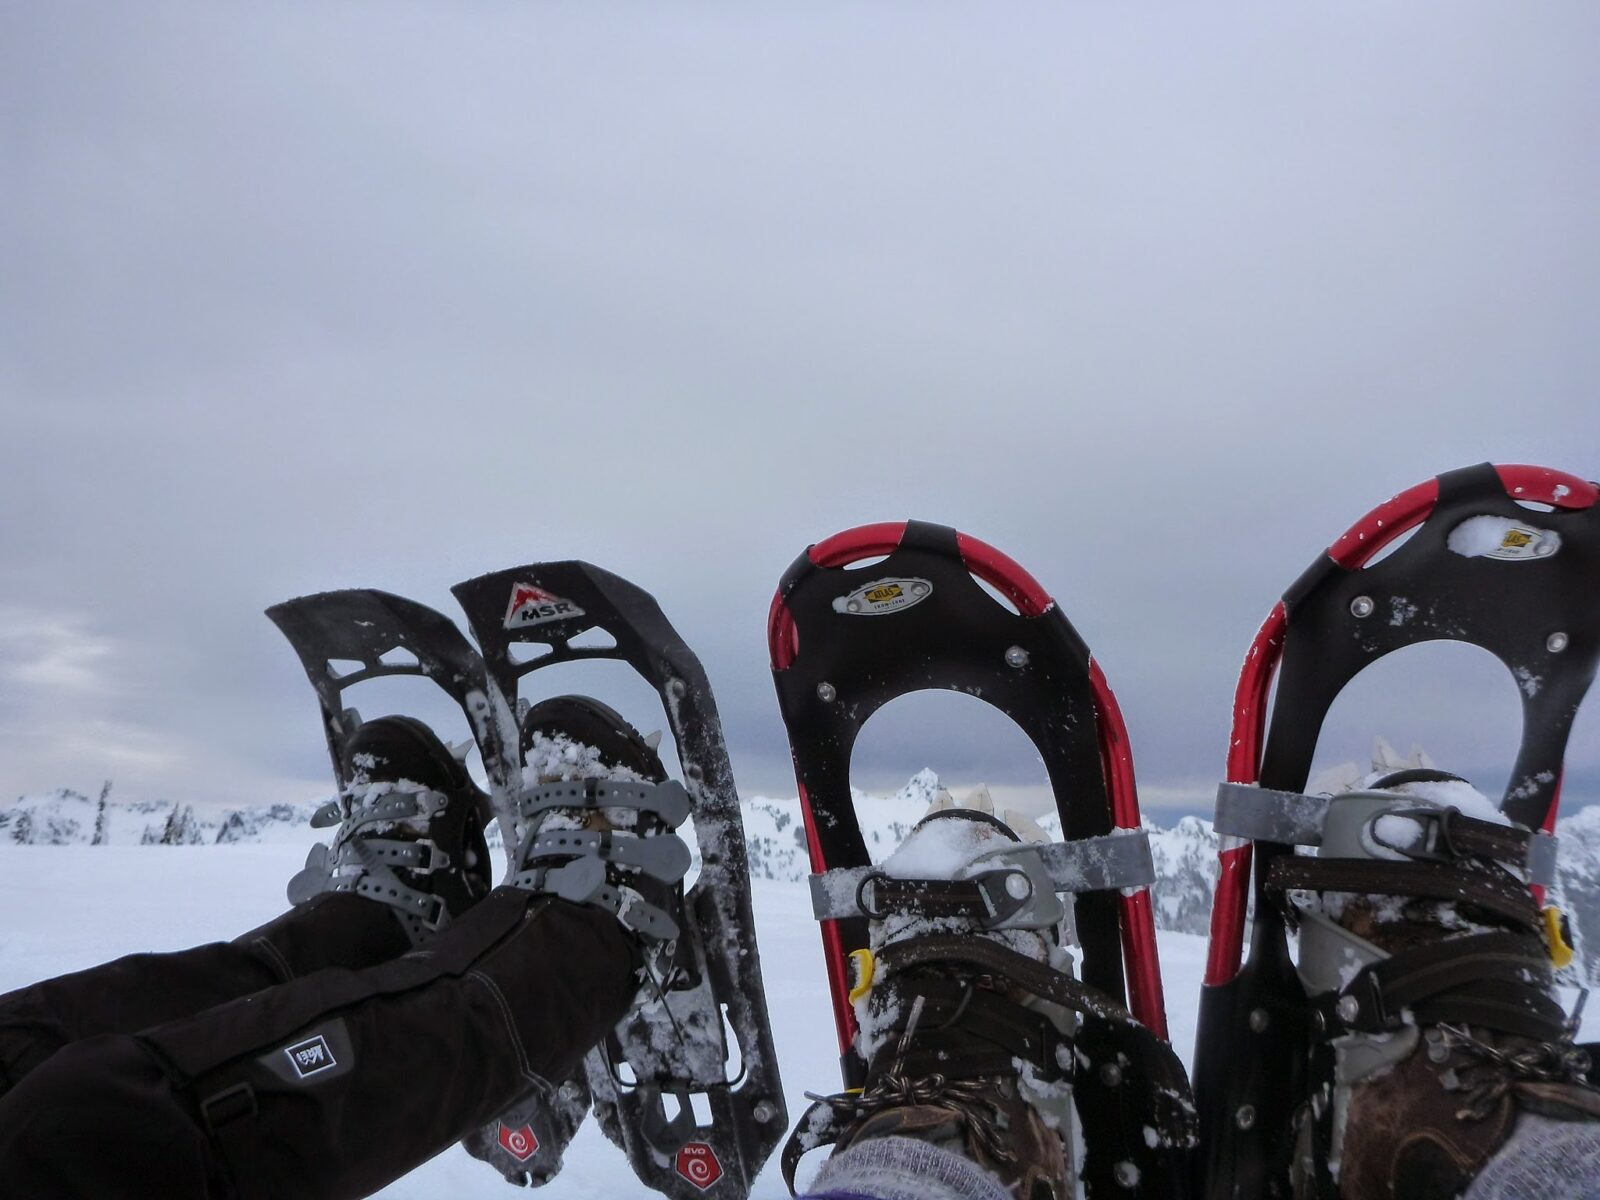 Two sets of feet in snowshoes.